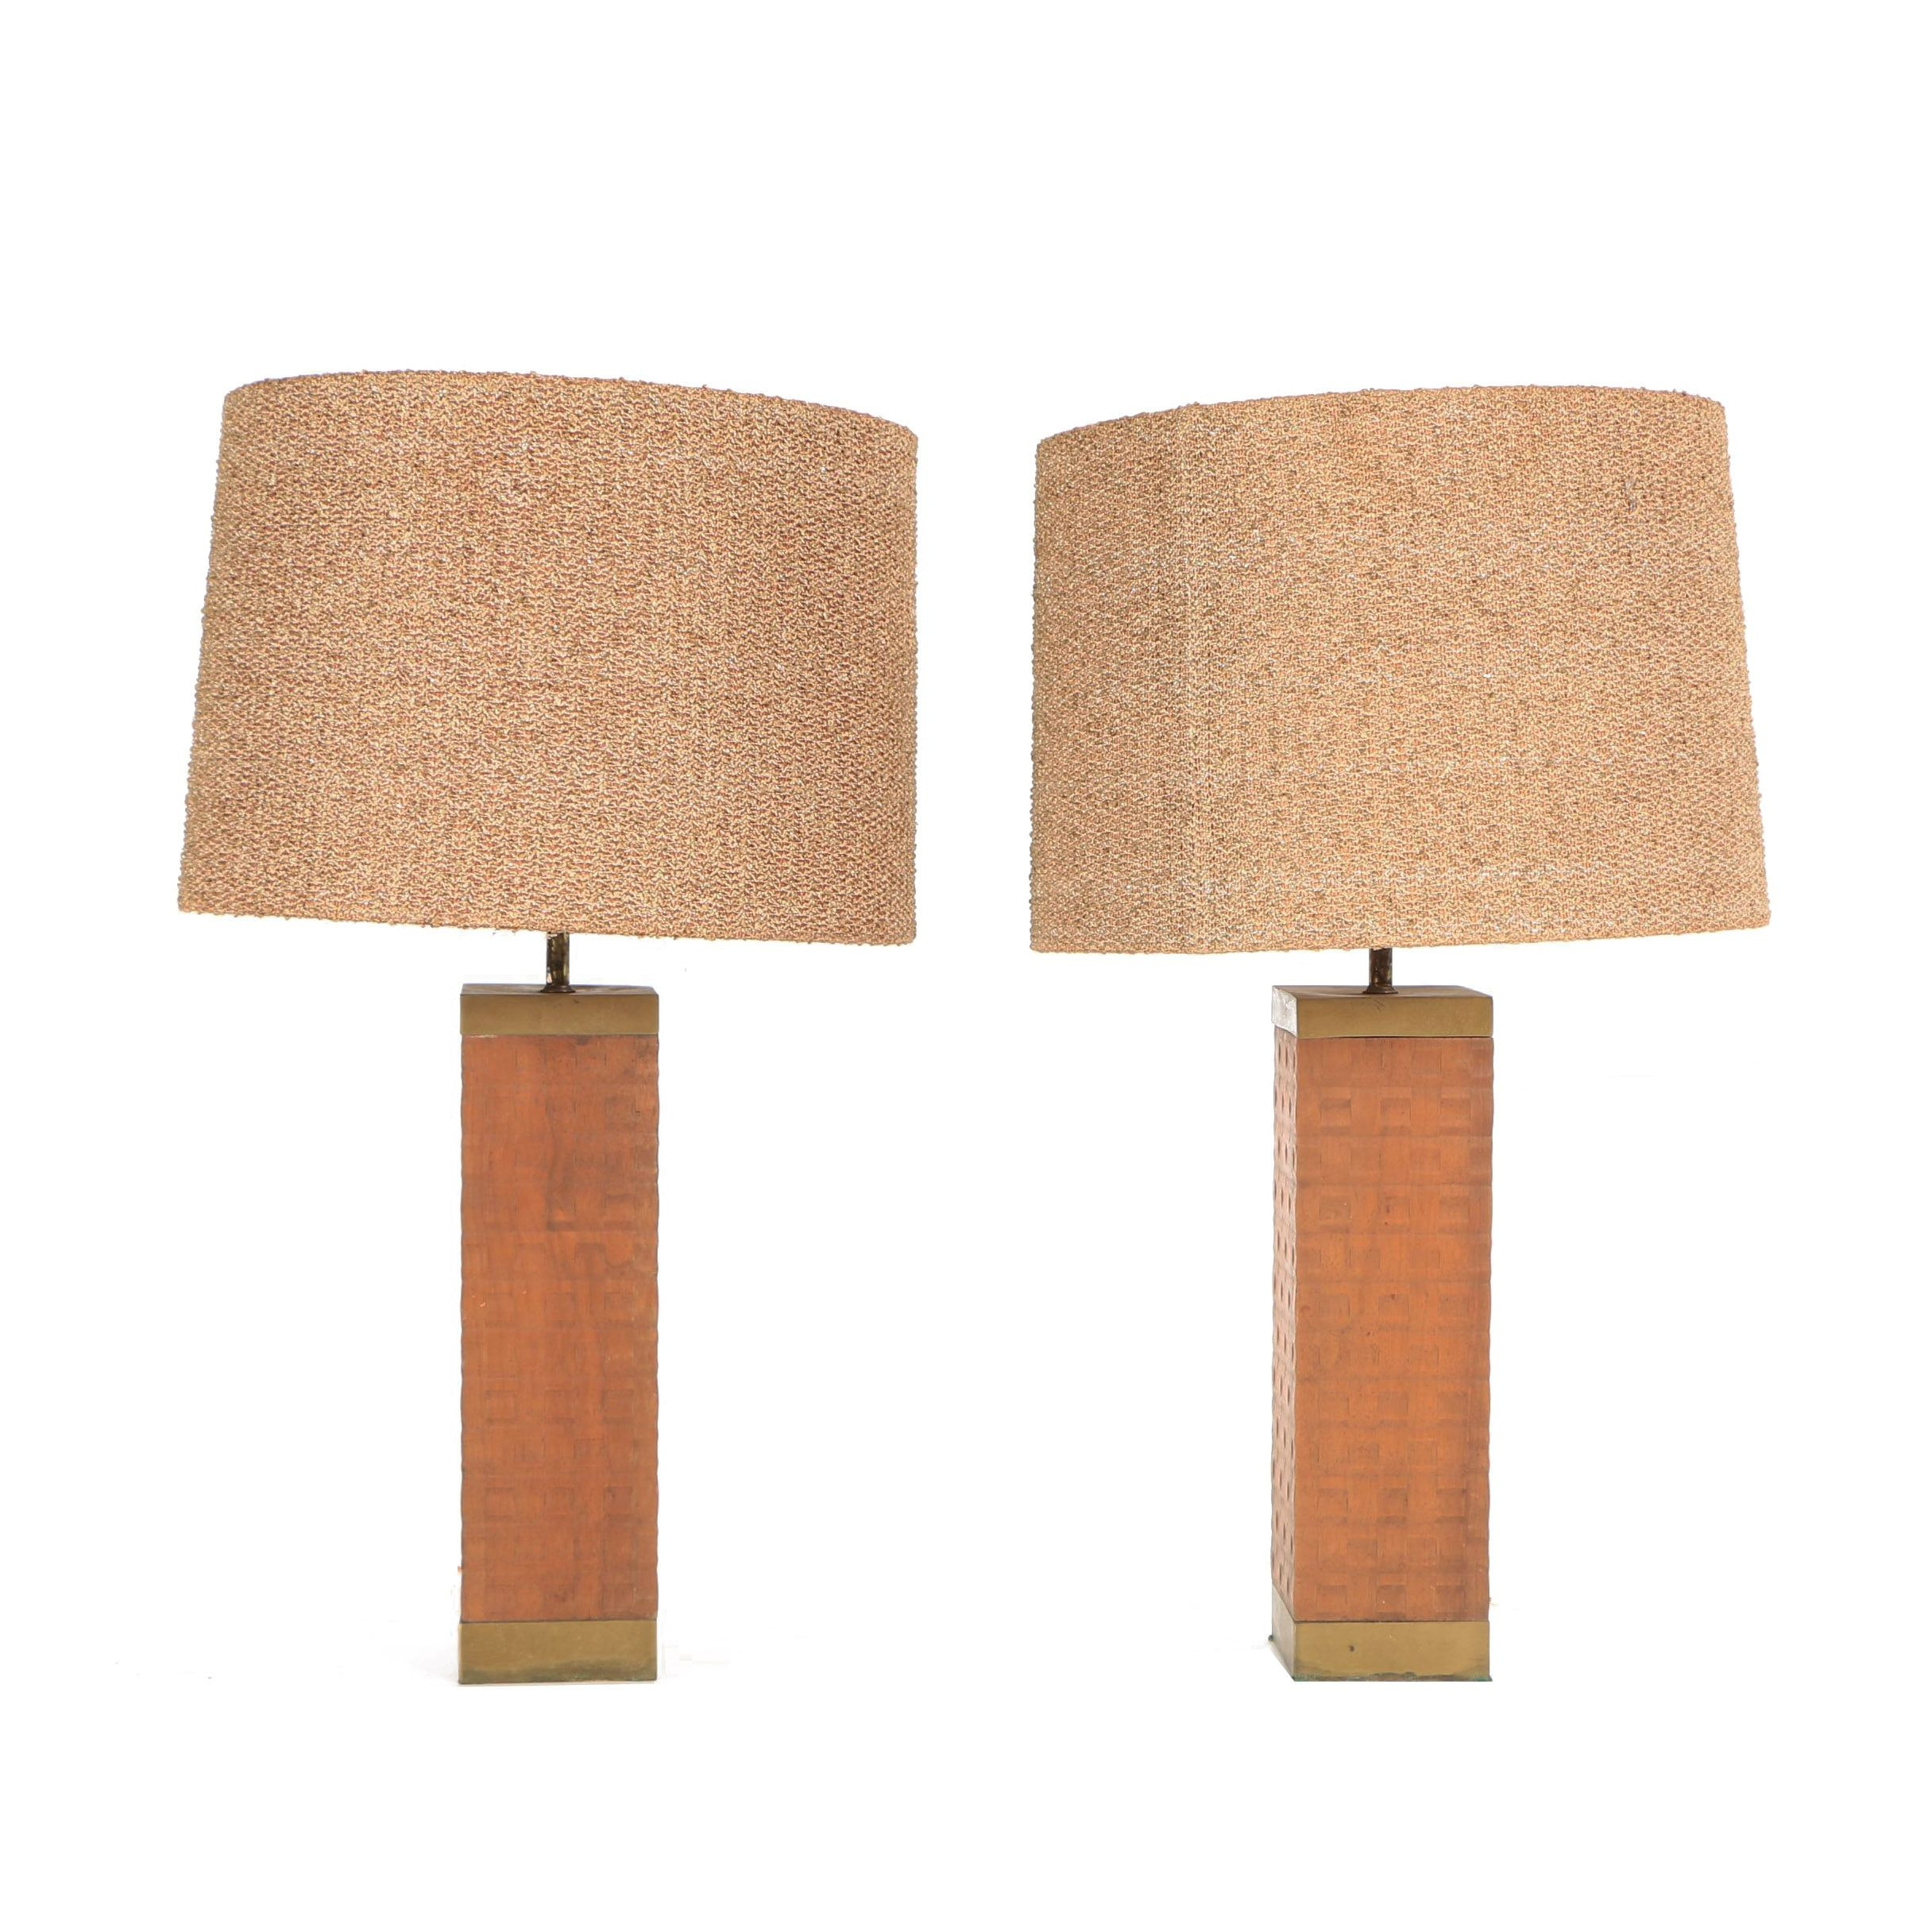 Mid-Century Basketweave Block Table Lamps with Textured Shades